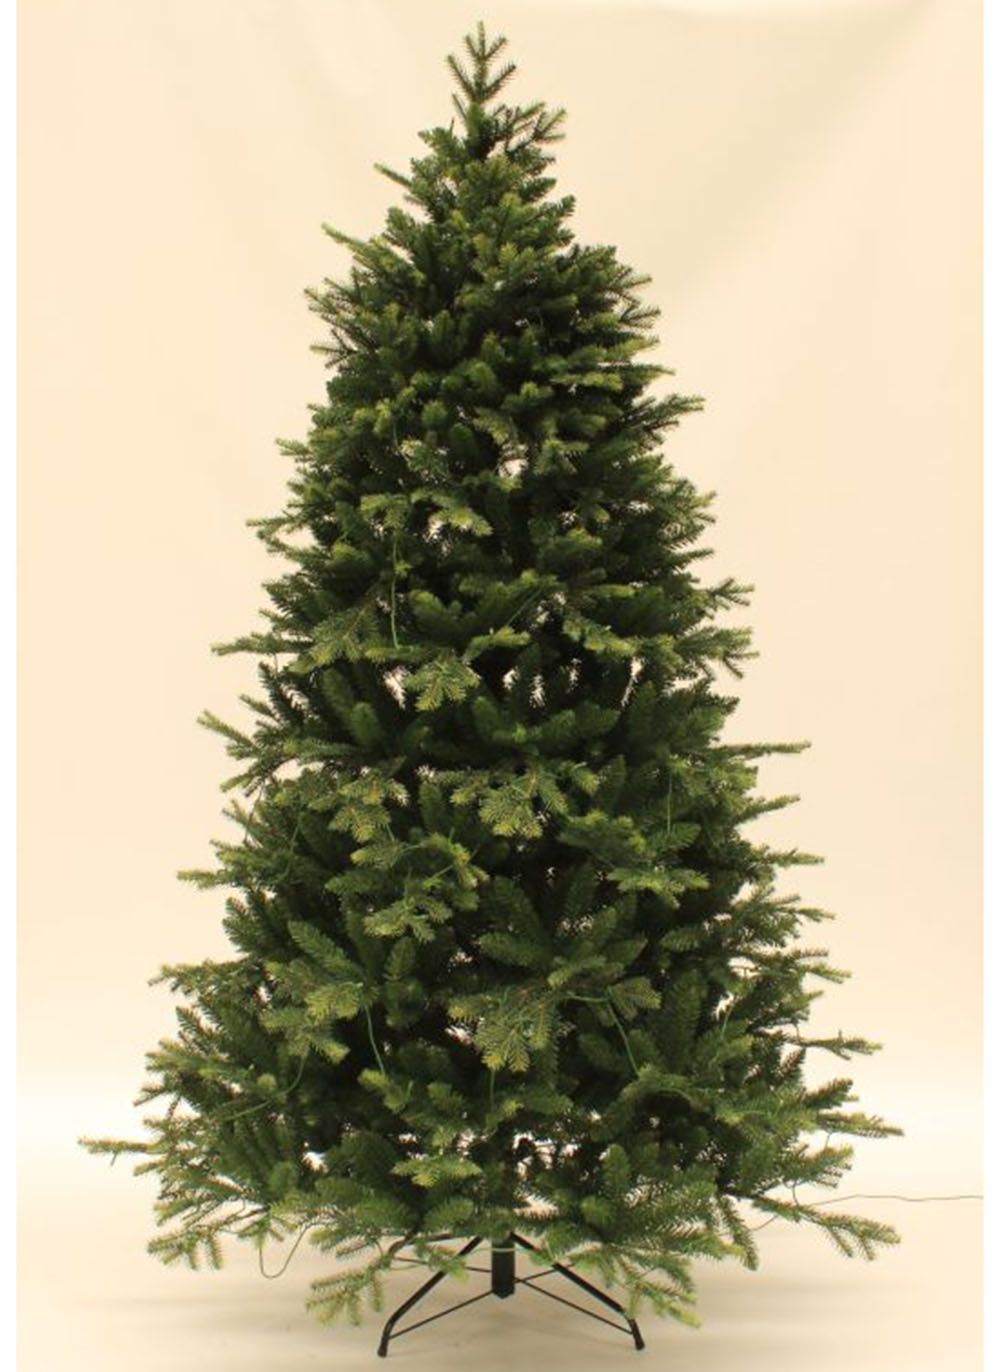 King Of Christmas Highest Quality Artificial Christmas Trees Artificial Christmas Tree Christmas Tree Holiday Christmas Tree